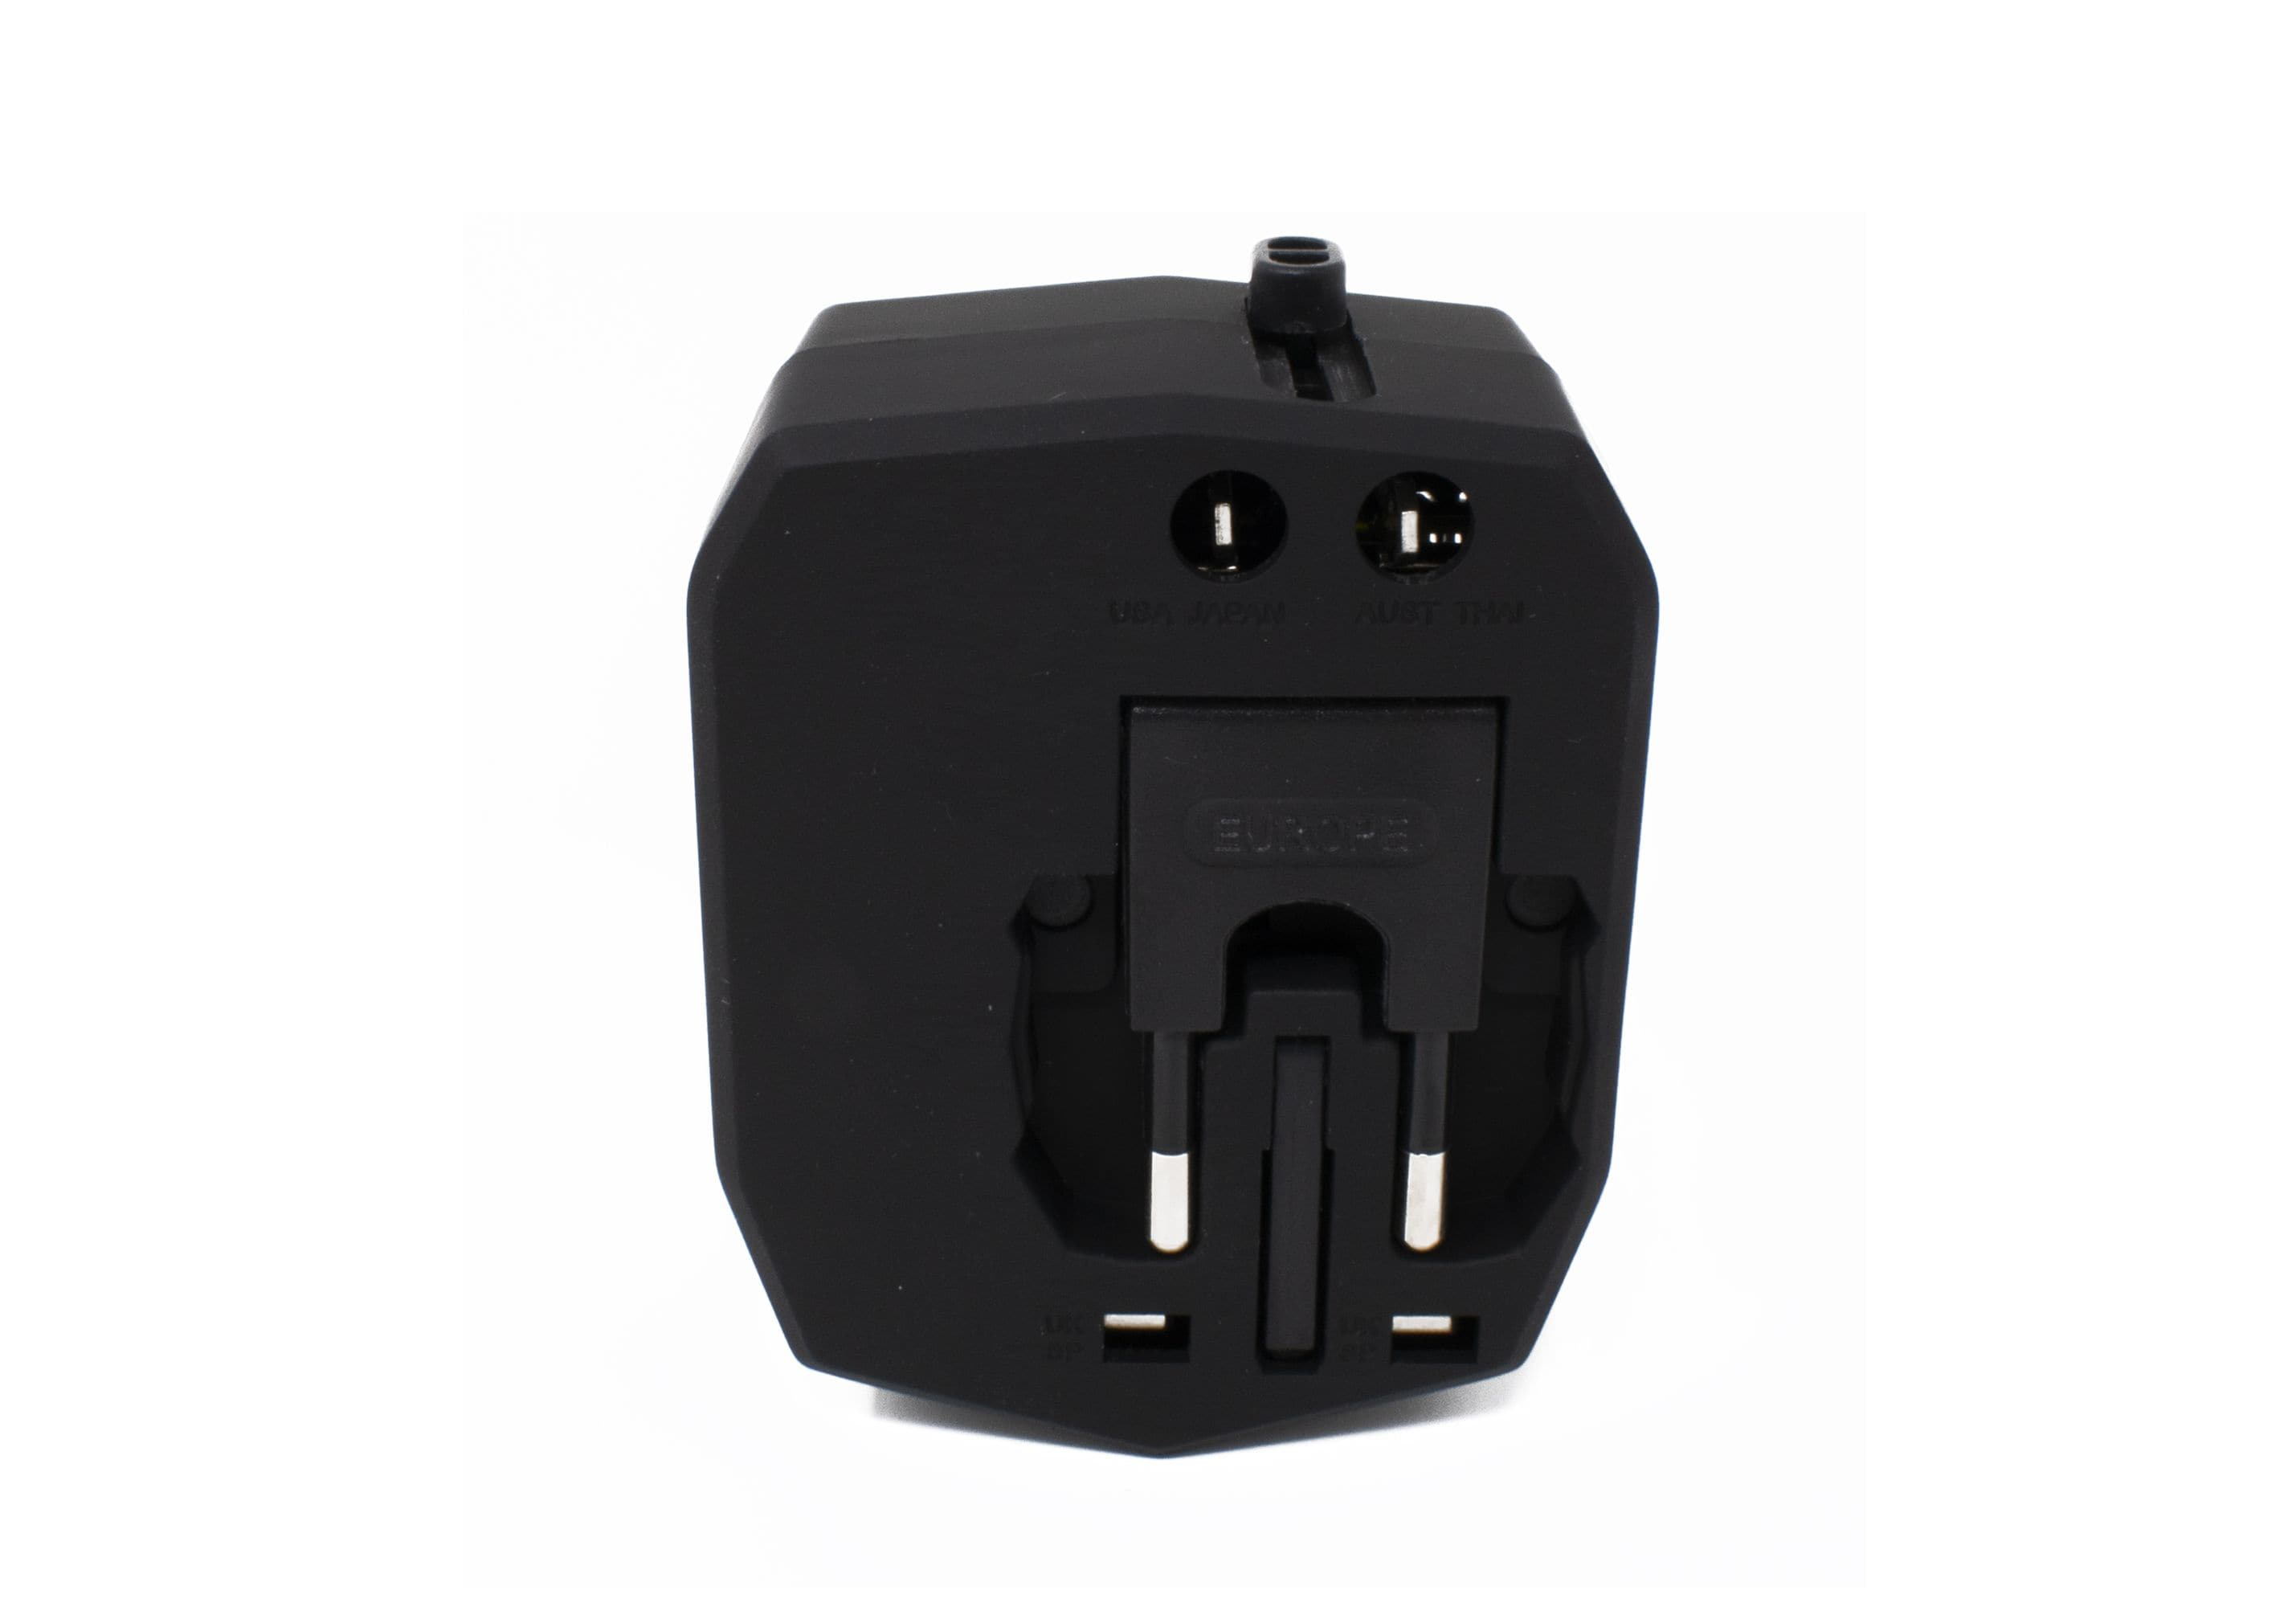 International AC adapter with 2 USB